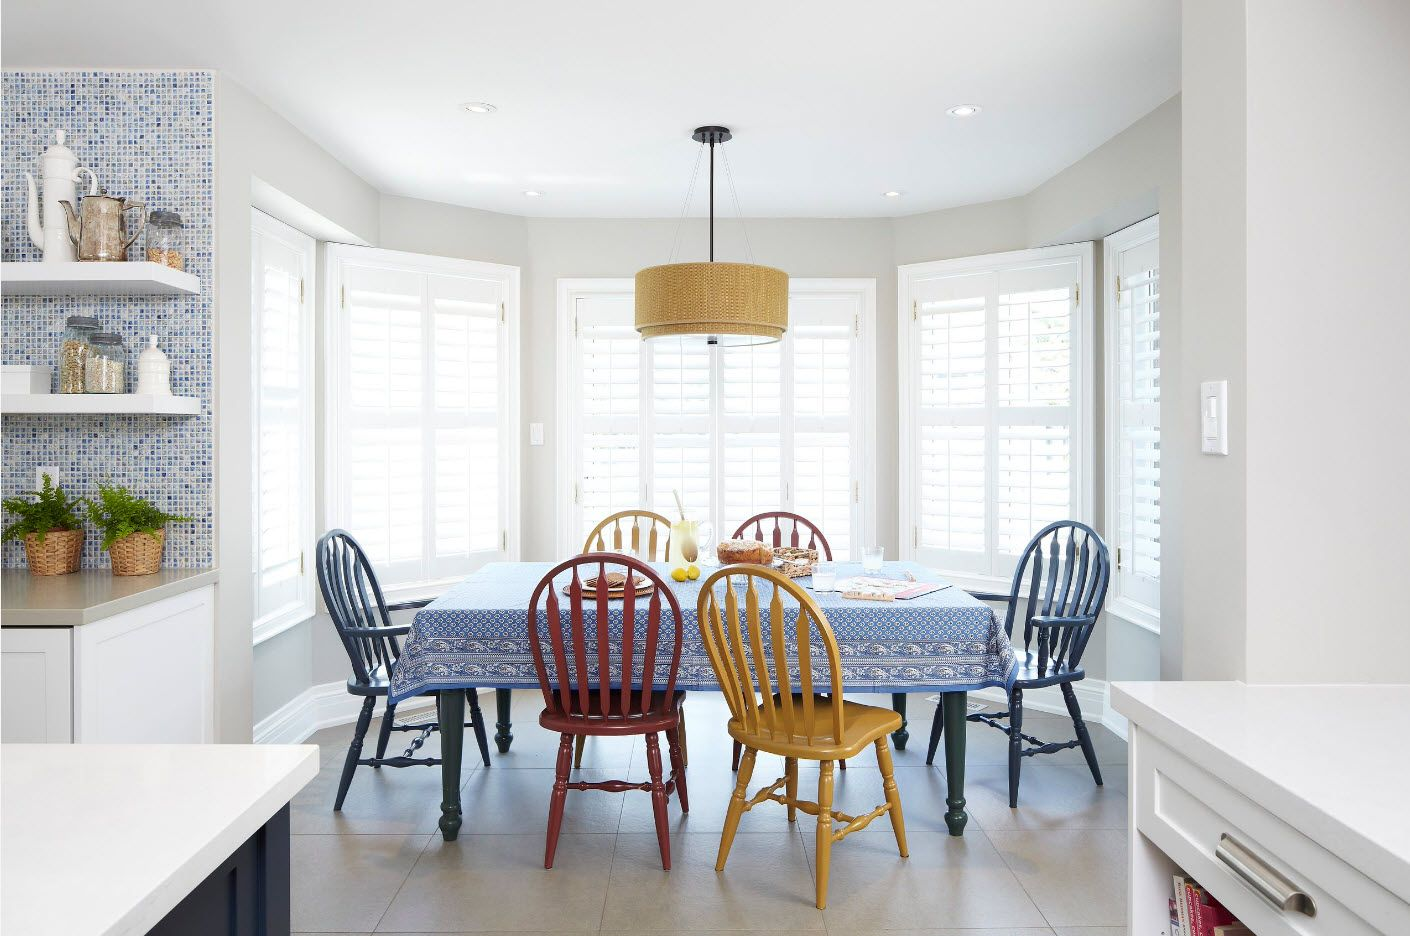 Dining Zone Table and Chairs: Practical and Aesthetic Composition. Yellow, red, blue stools in the dining zone